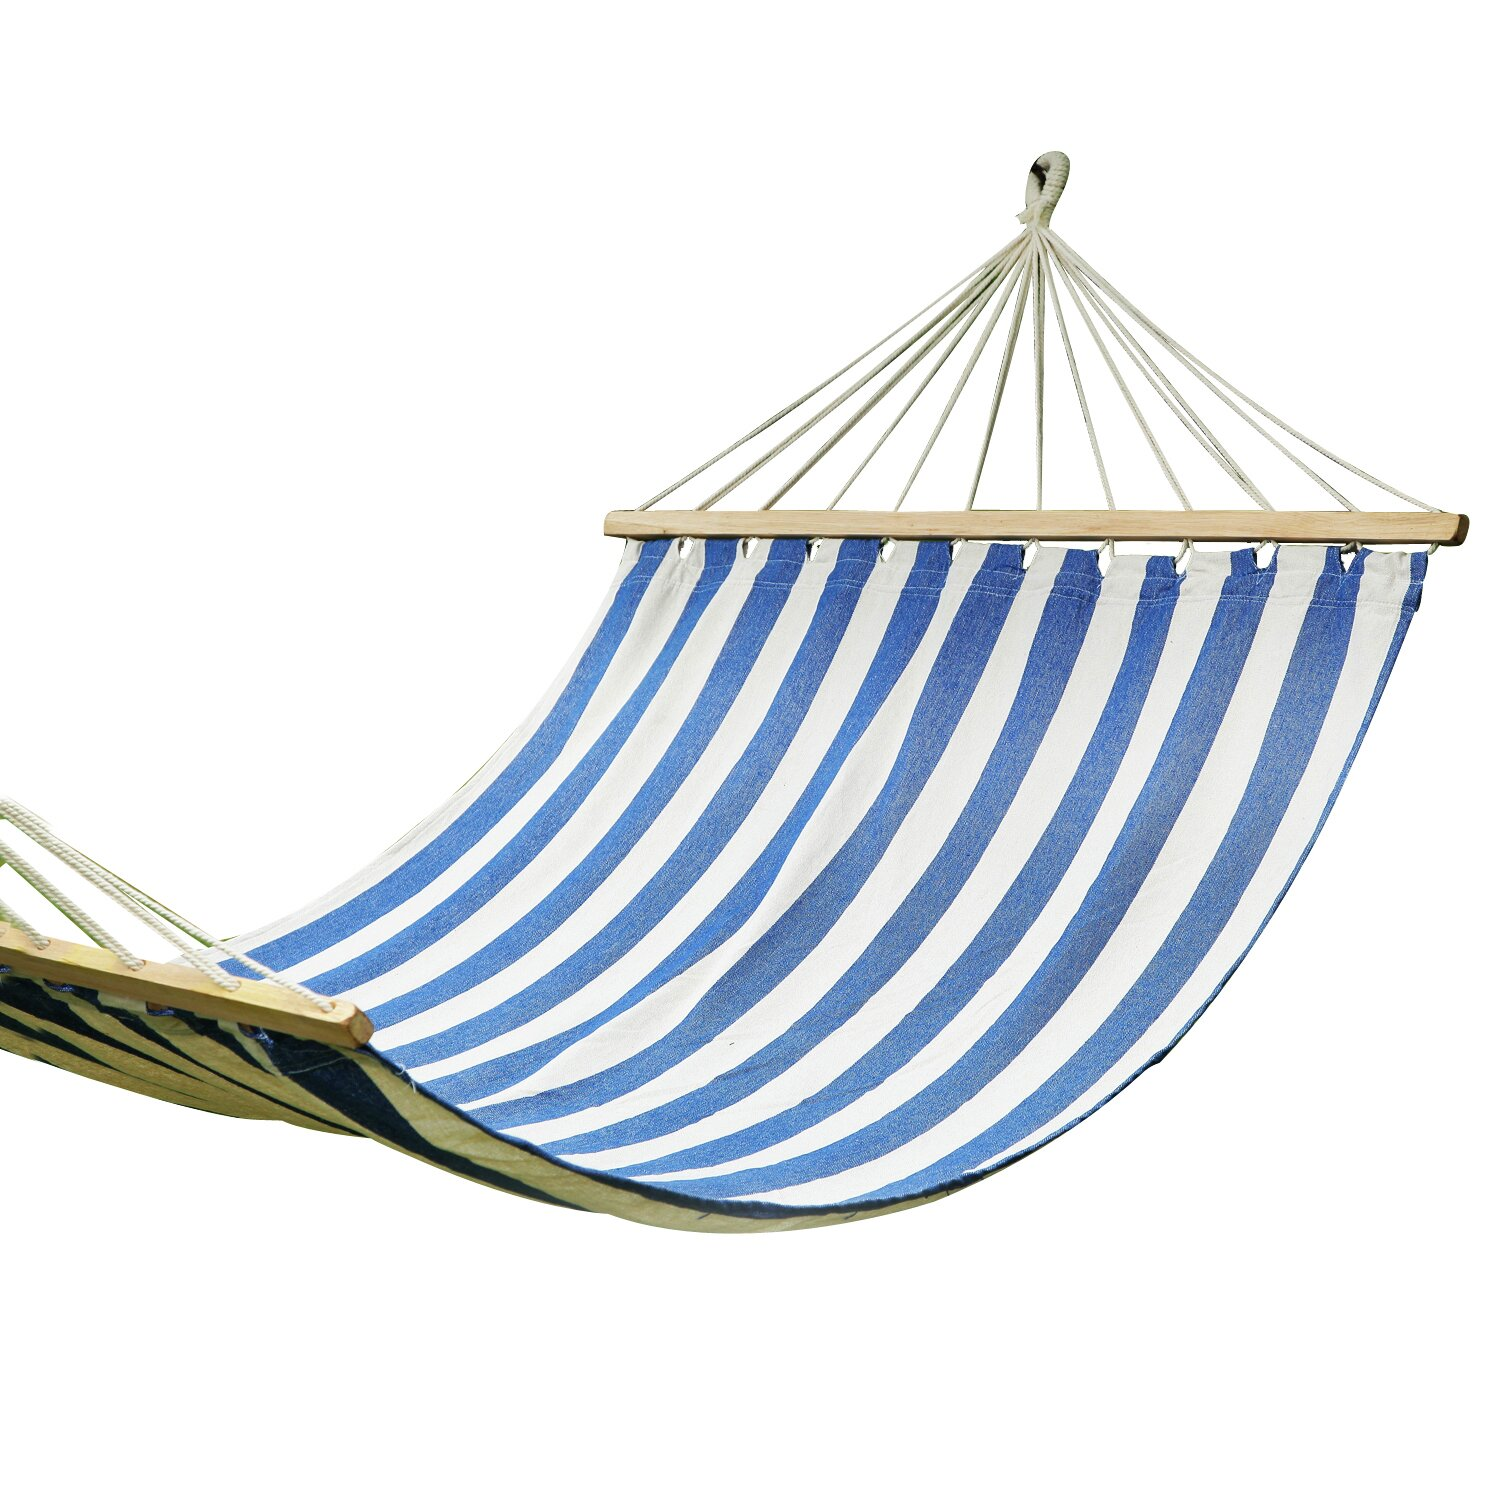 suspended indoor outdoor hammock bed with spreader bar by adecotrading